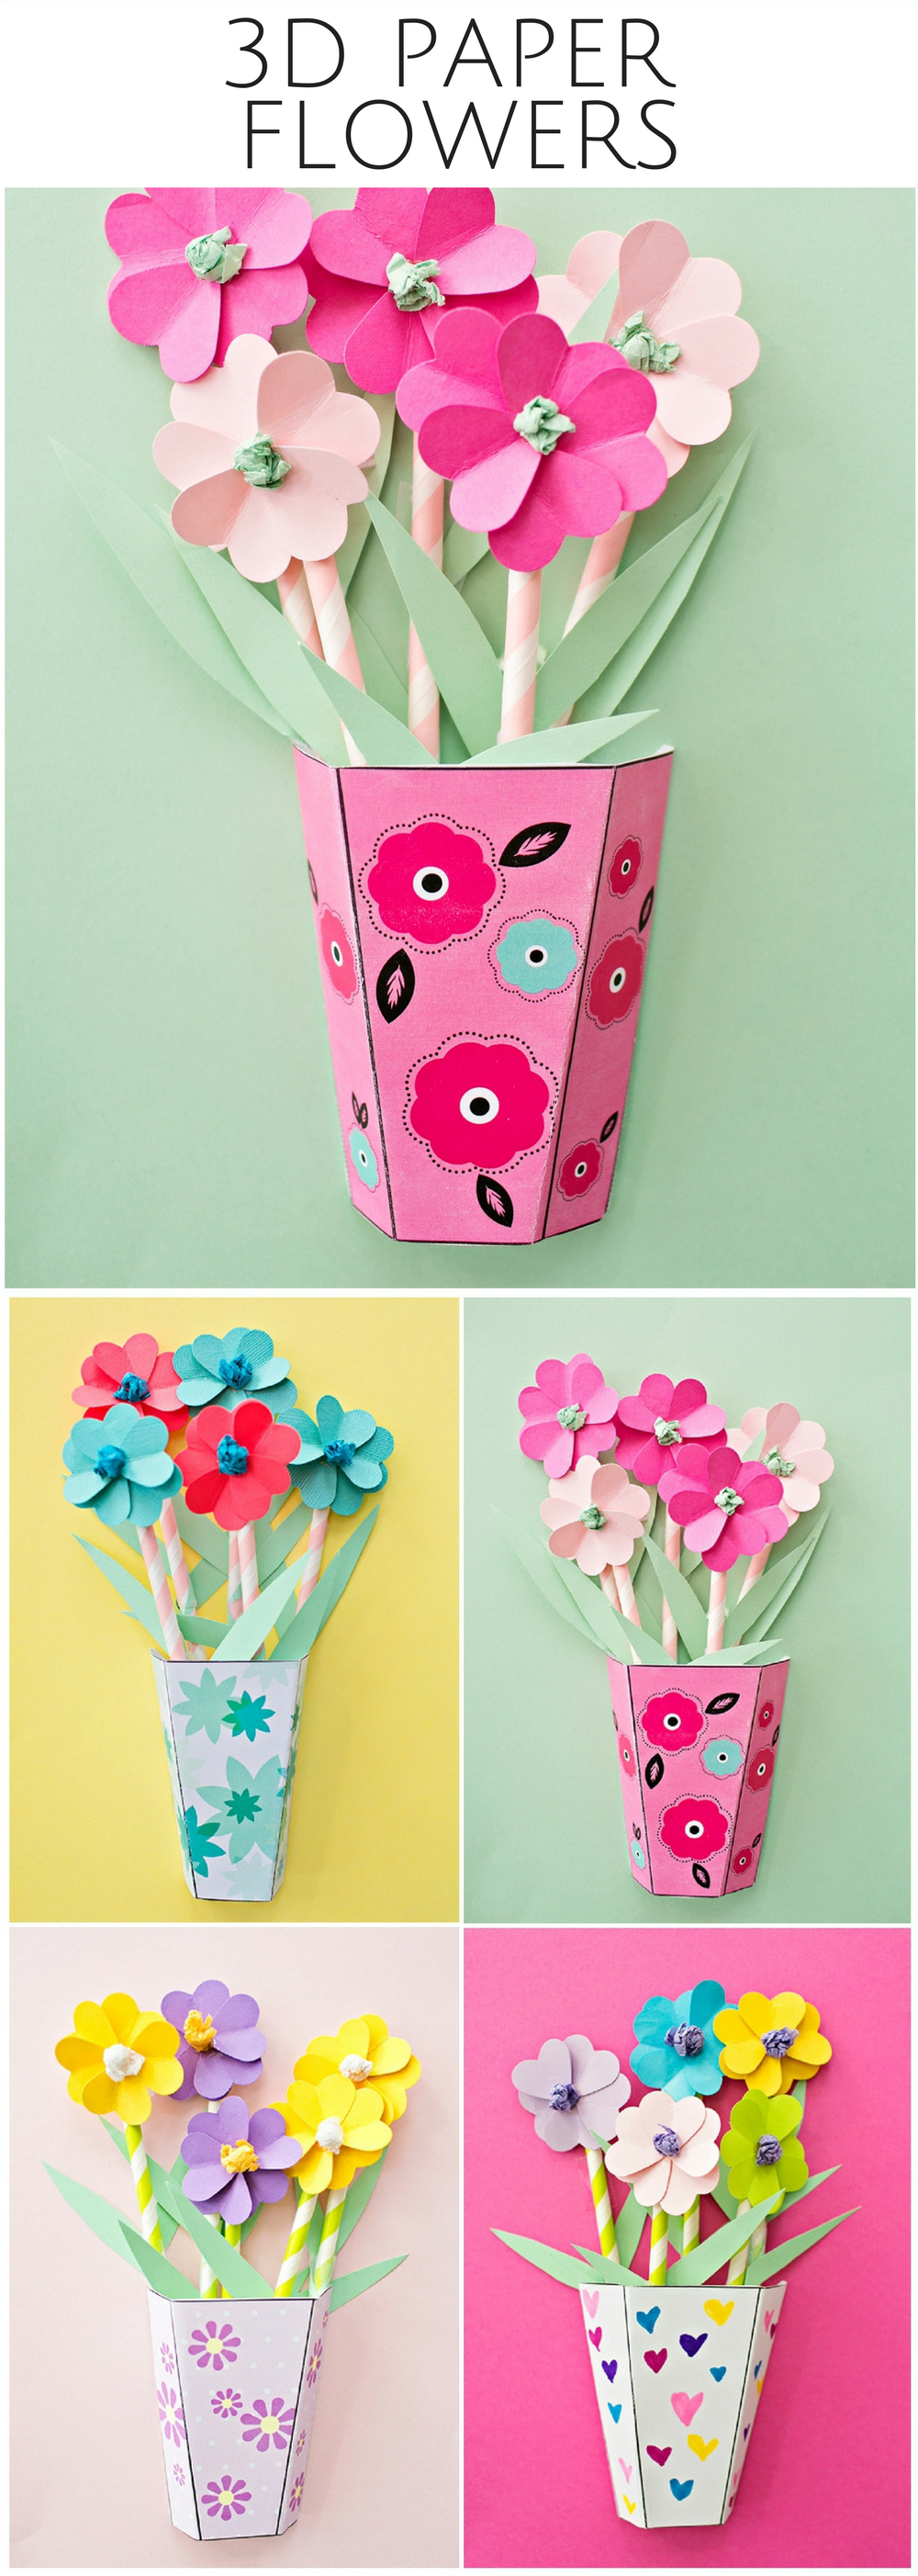 How To Make 3d Paper Flower Bouquets With Video Fun Kids Craft